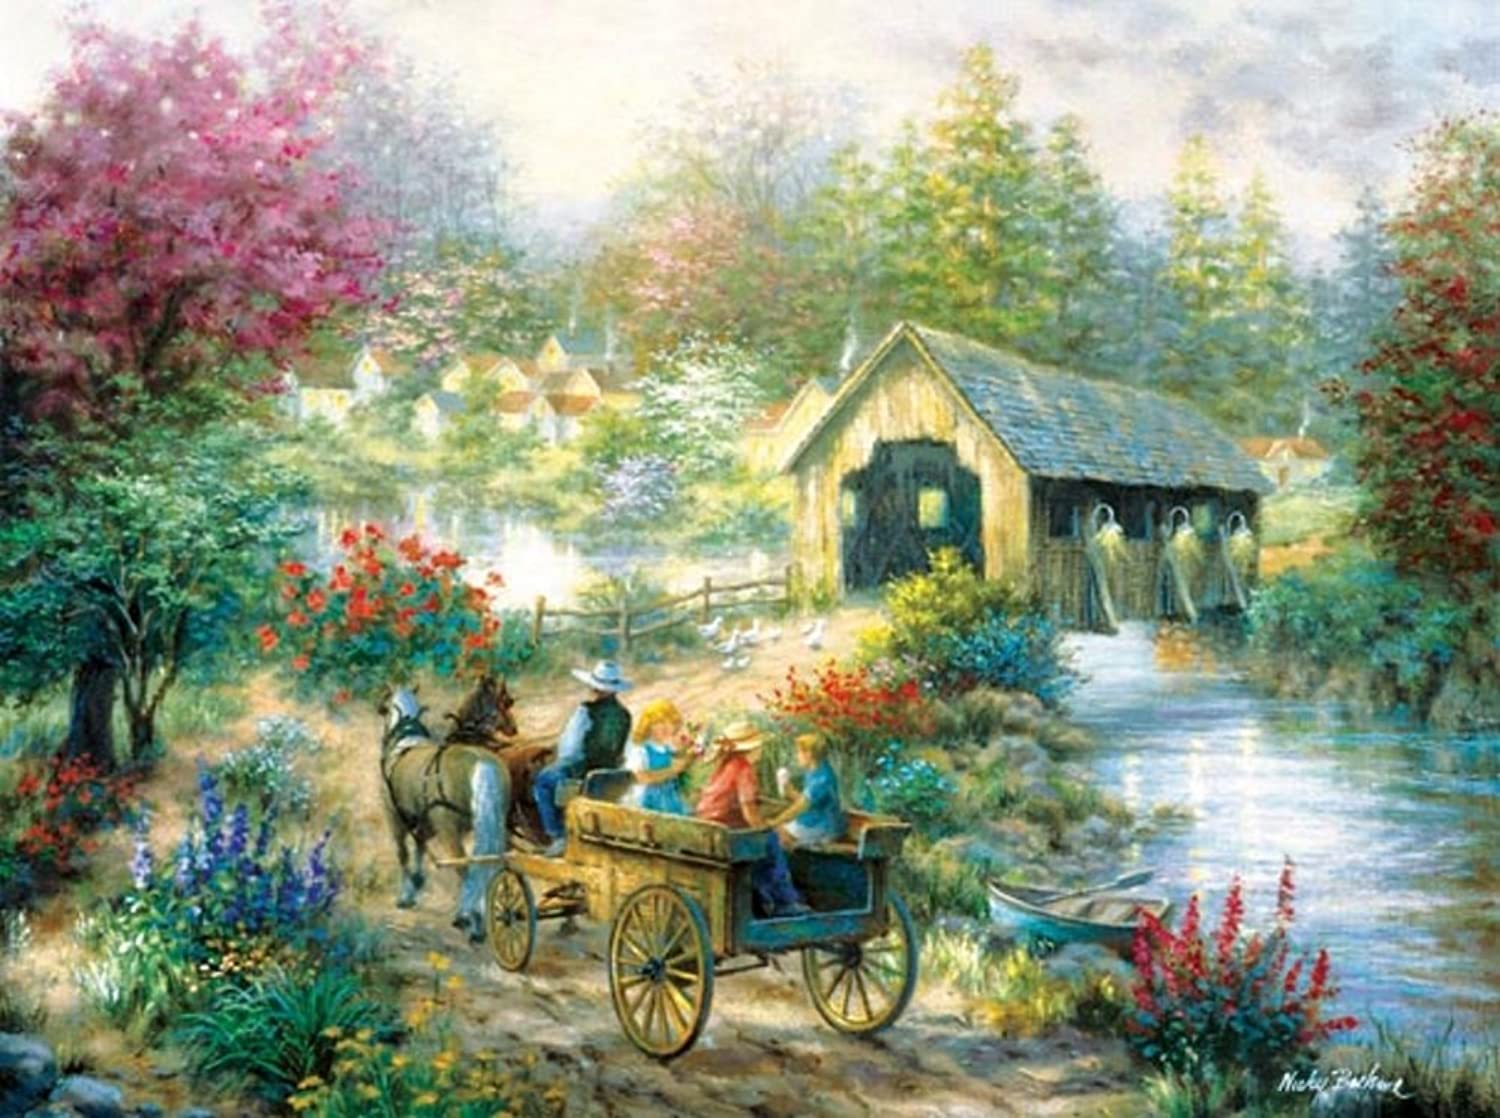 Merriment at the Covered Bridge 1000 pc Jigsaw Puzzle